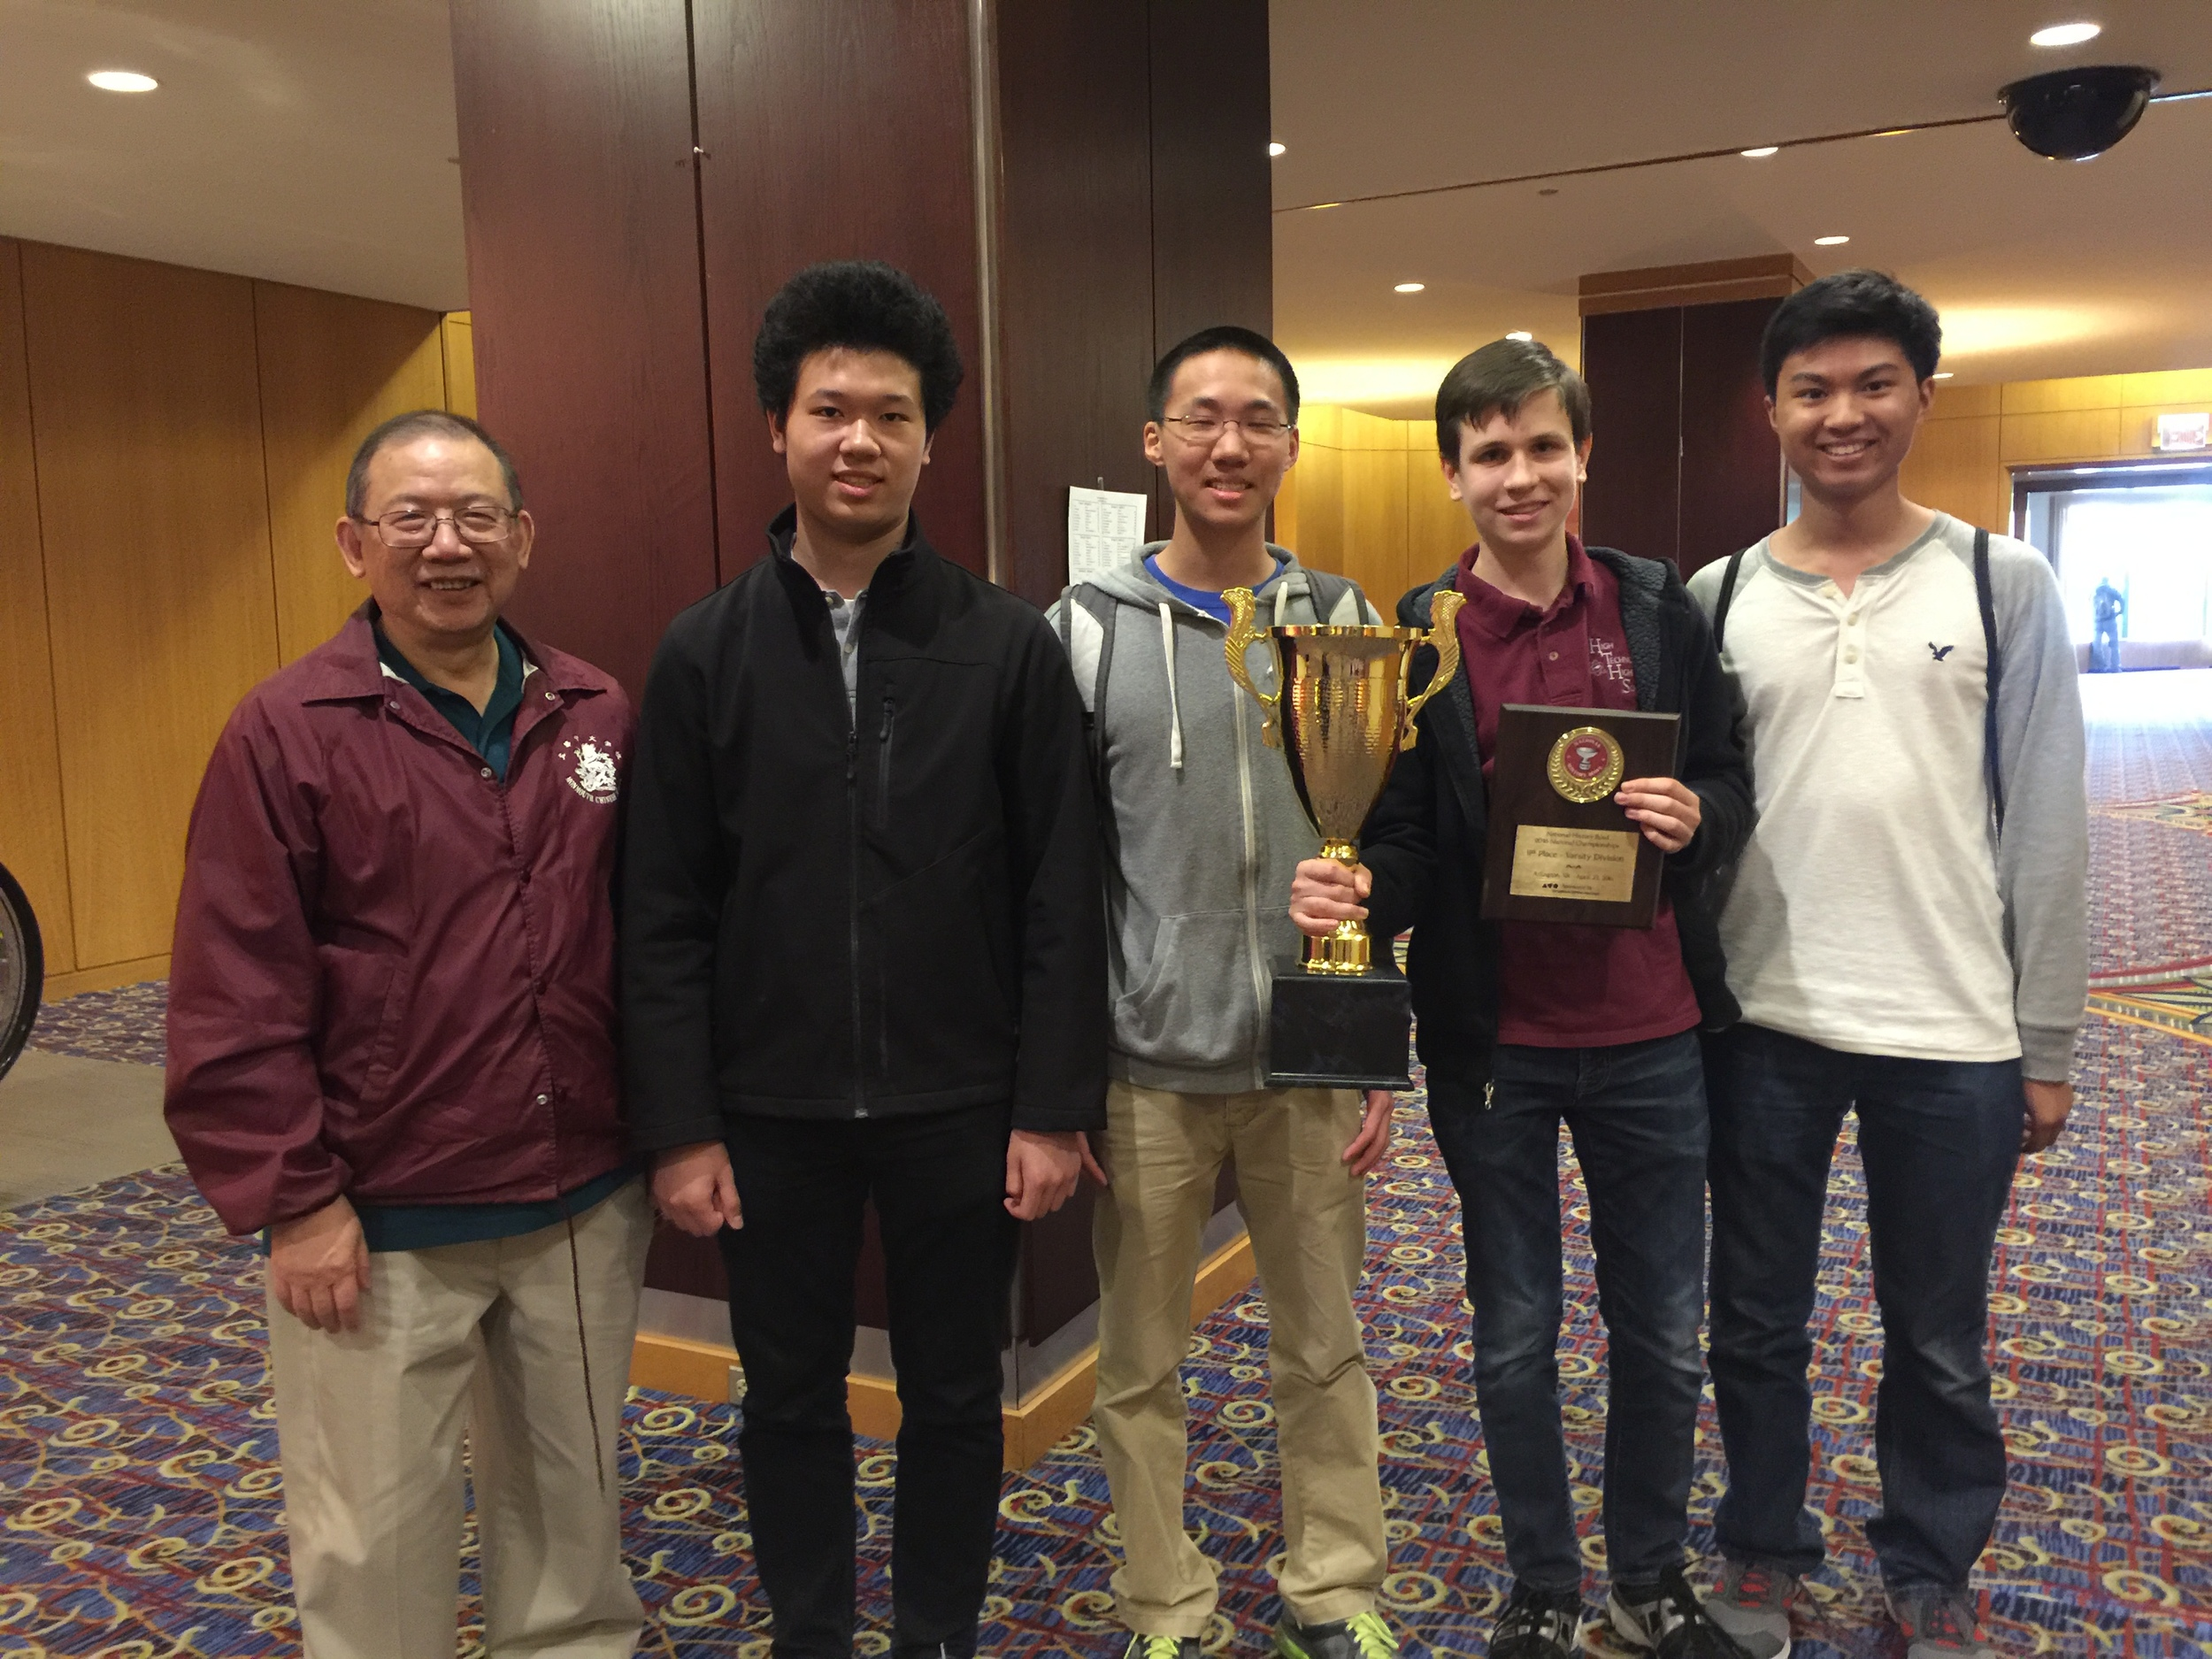 From Left to Right: Dr. Eng, Samuel Kao, Ray Zeng, Doug Simons, and Andrew Huang.